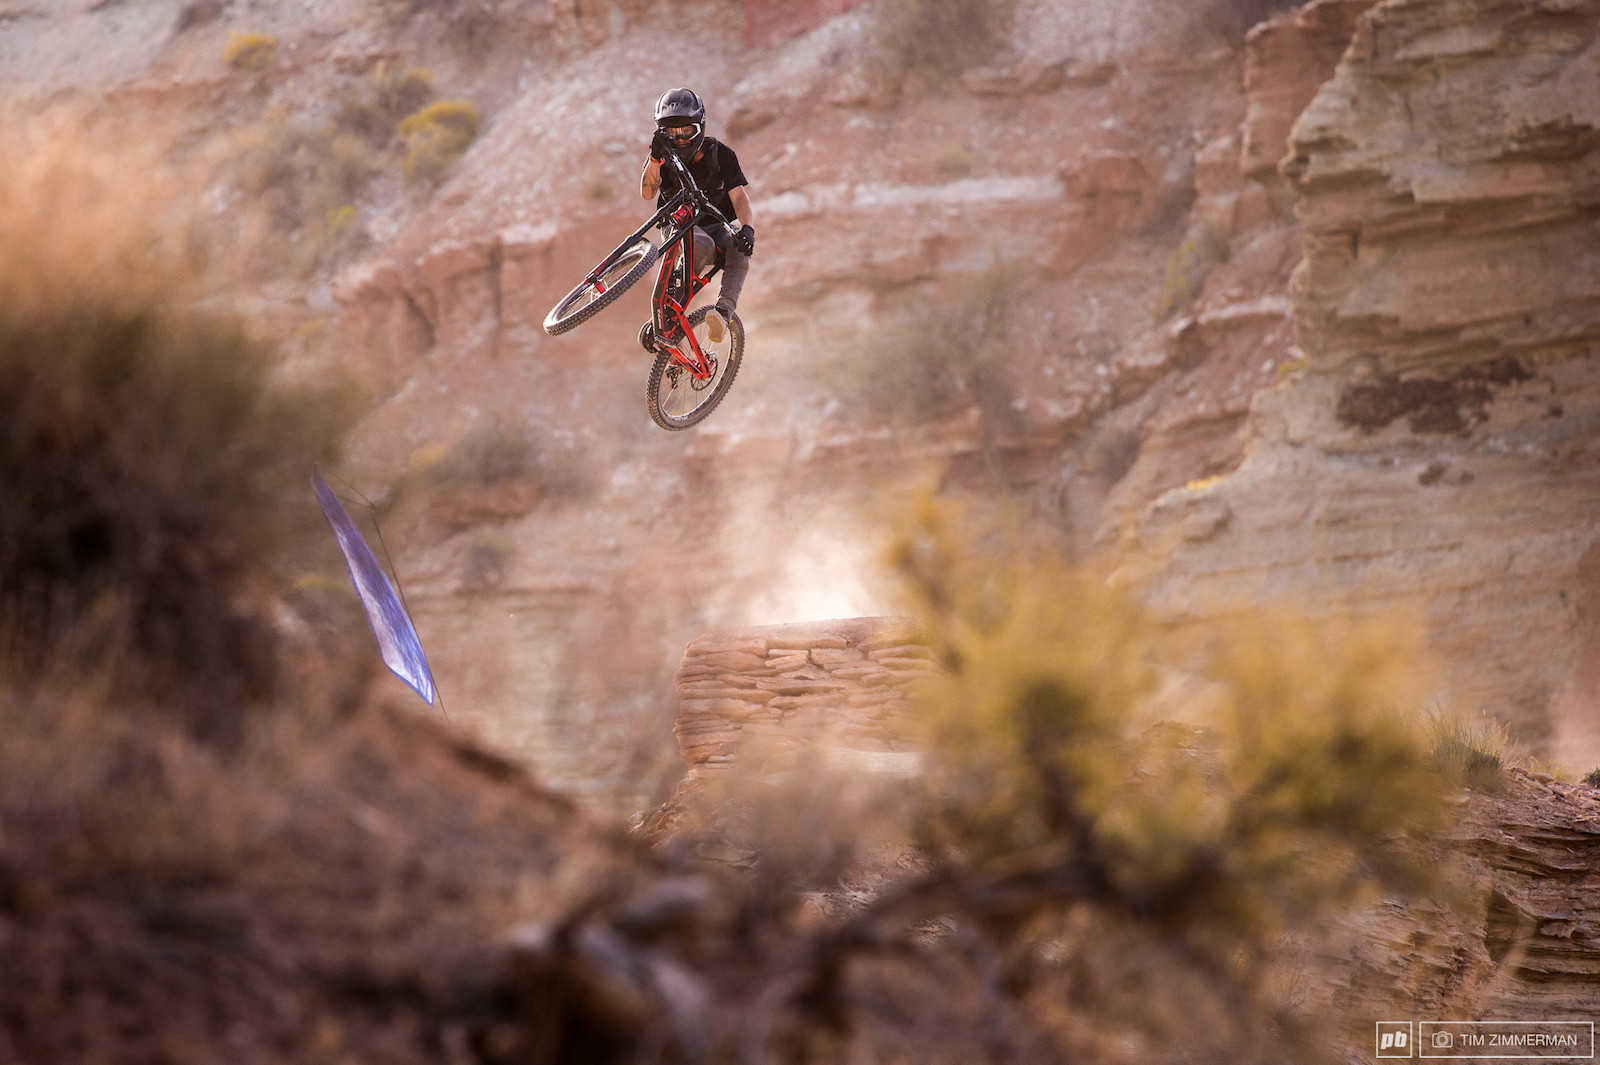 Ethan Nell s controlled powerful runs show experience beyond his years. Growing up in these mountains has certainly helped shape the way he interprets the Rampage terrain.